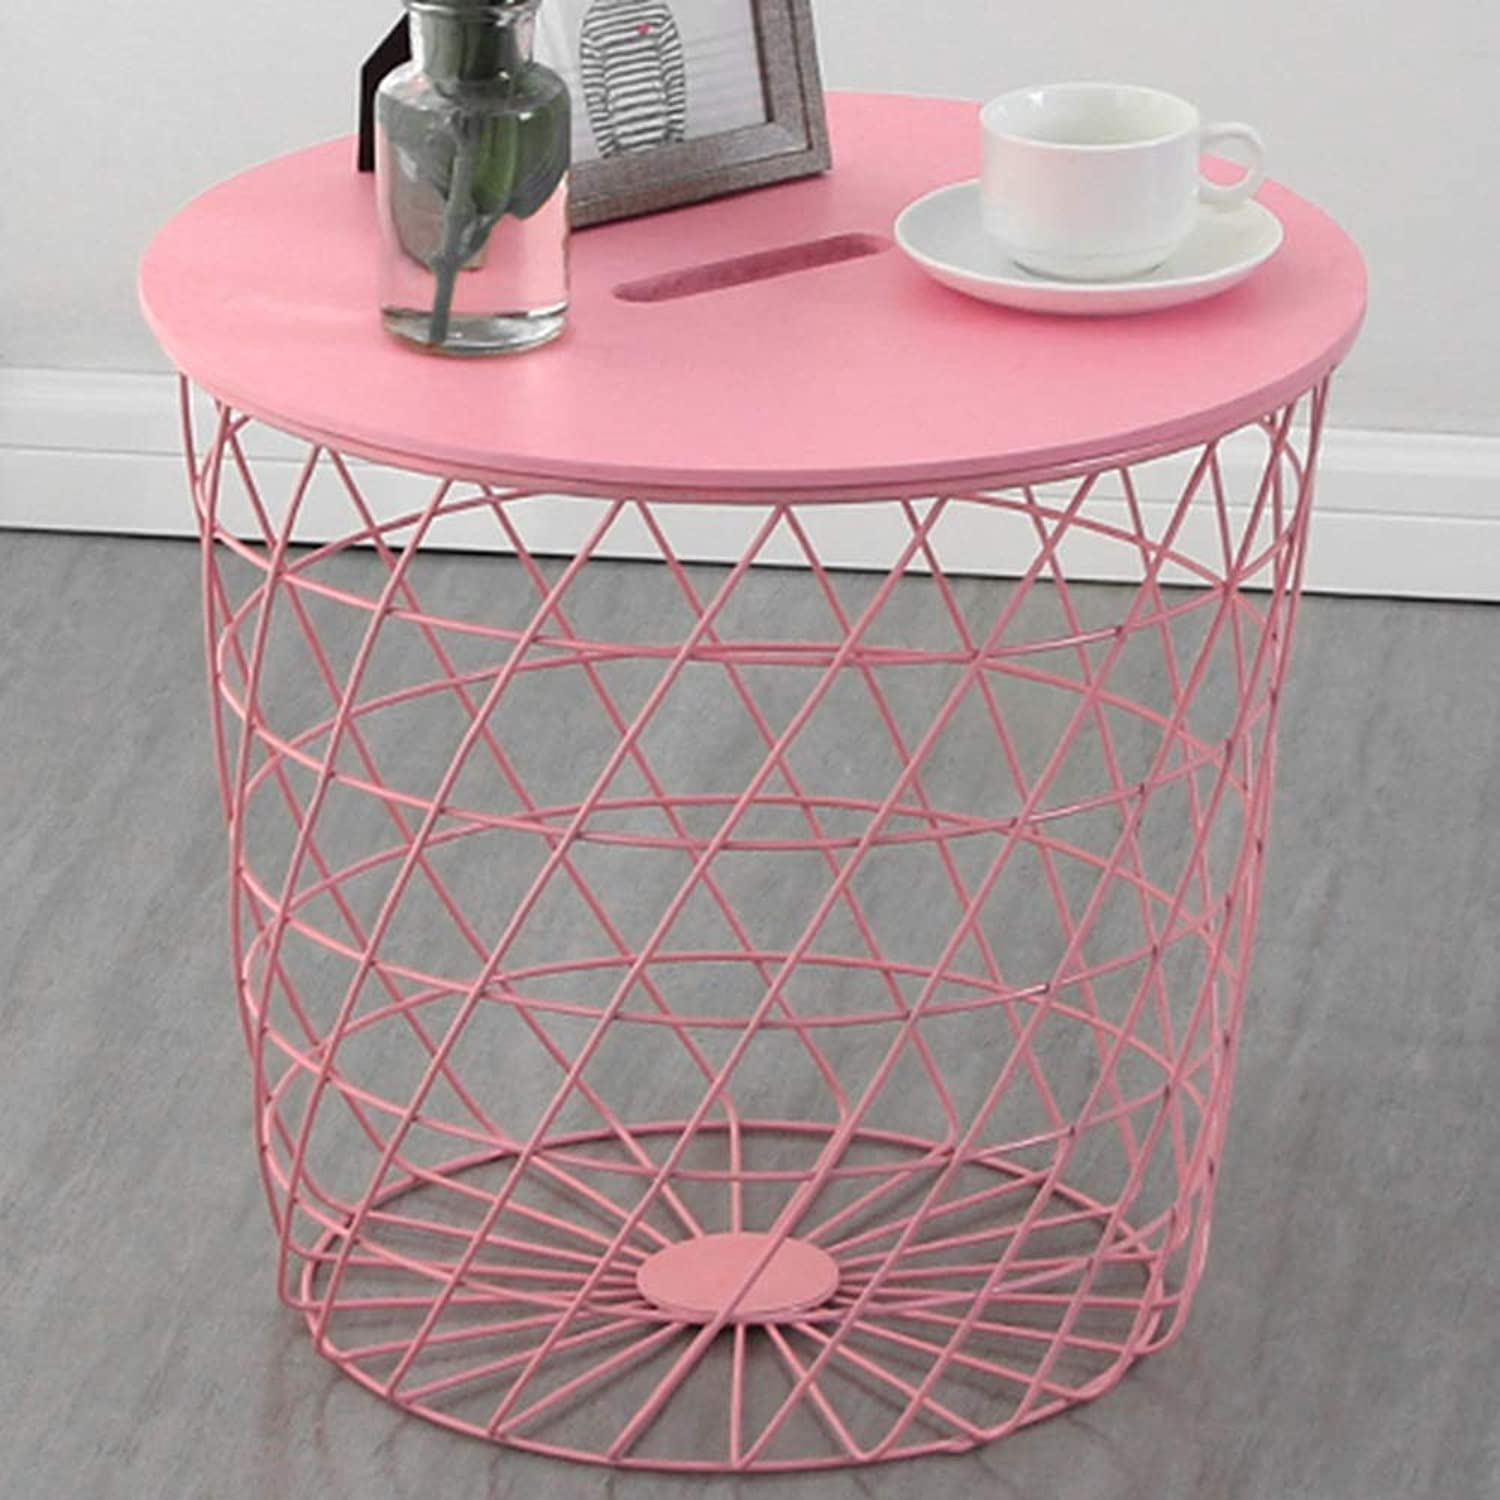 Nightstand Side Table, Iron Art Multifunction Practical Side Table Modern Sofa Side Simple Small Round Table Bedroom Bedside Storage Basket End Table (color   Pink)